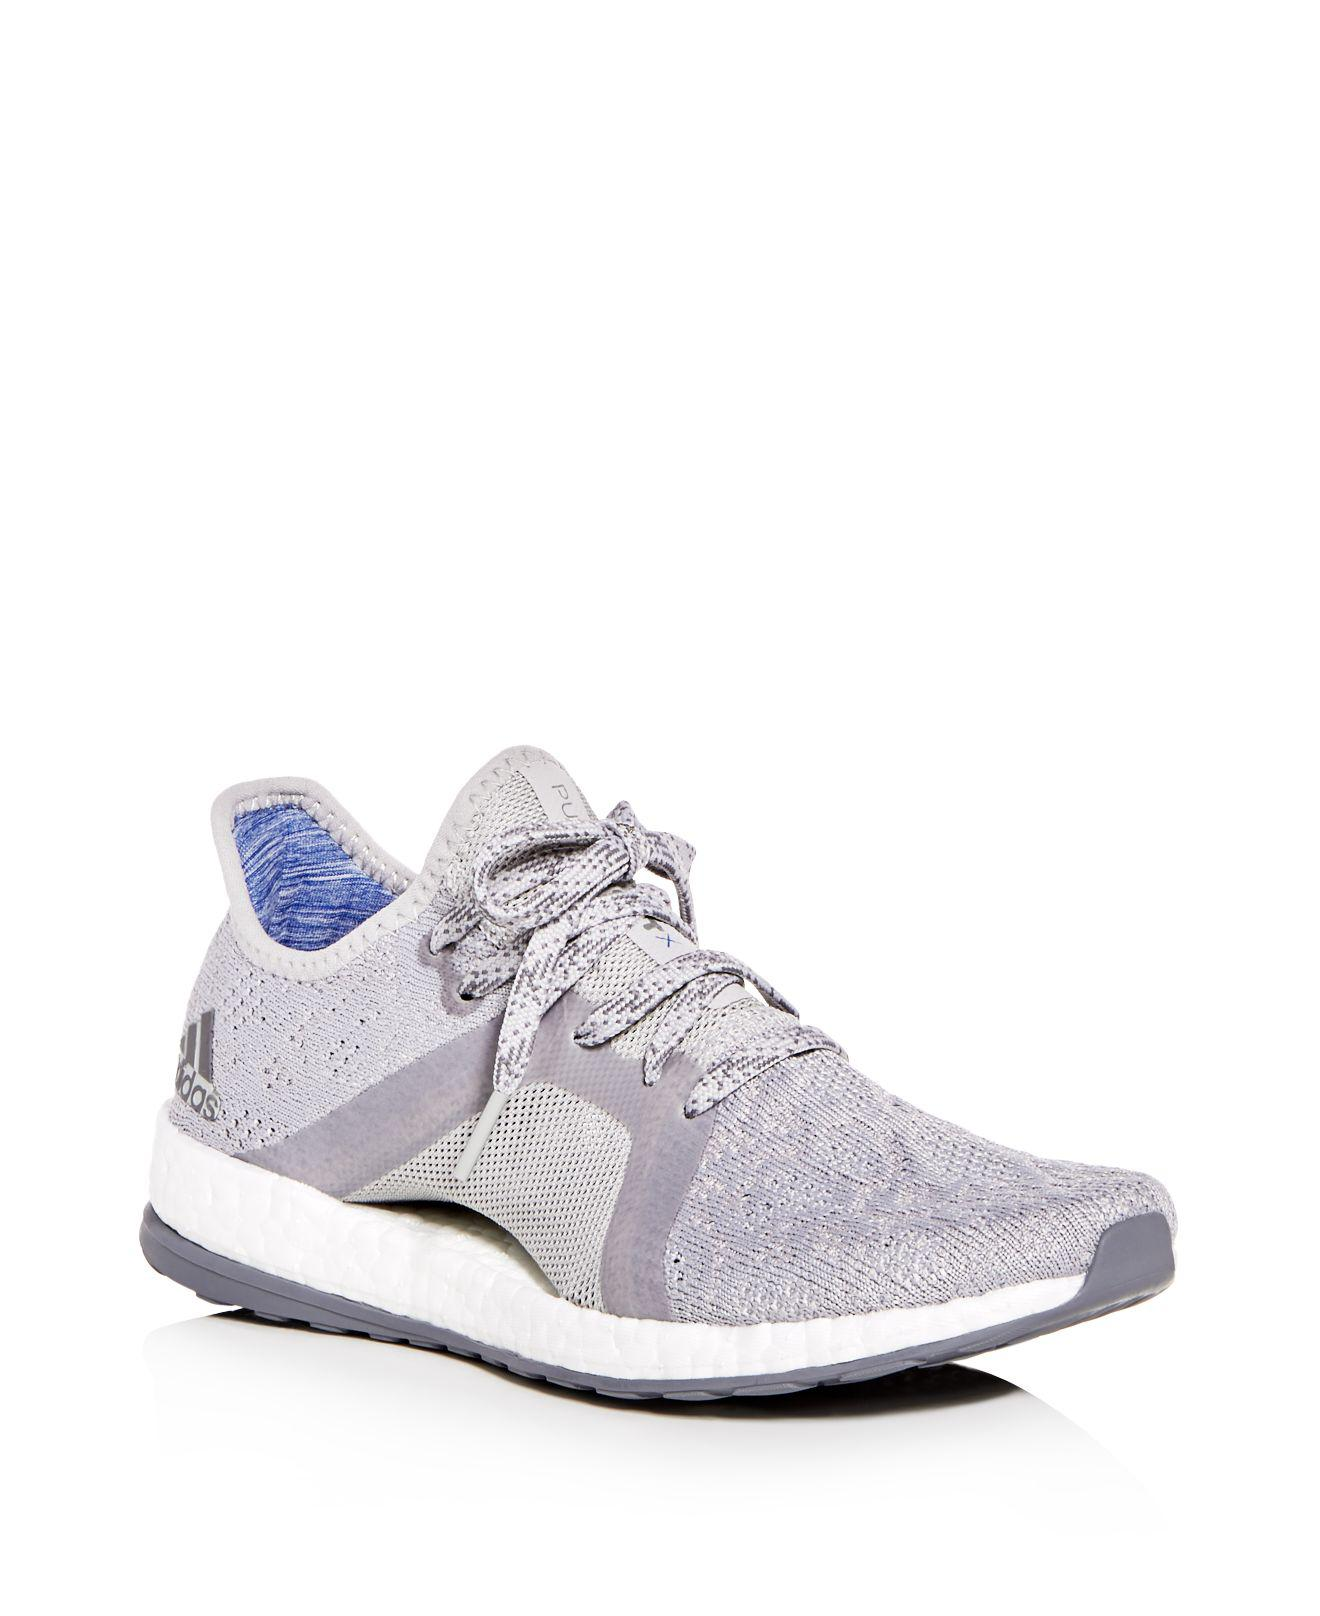 Free Shipping Sast Purchase Your Favorite  adidas Women's Pureboost X Element Knit Lace Up Sneakers 3wIL9MXtb